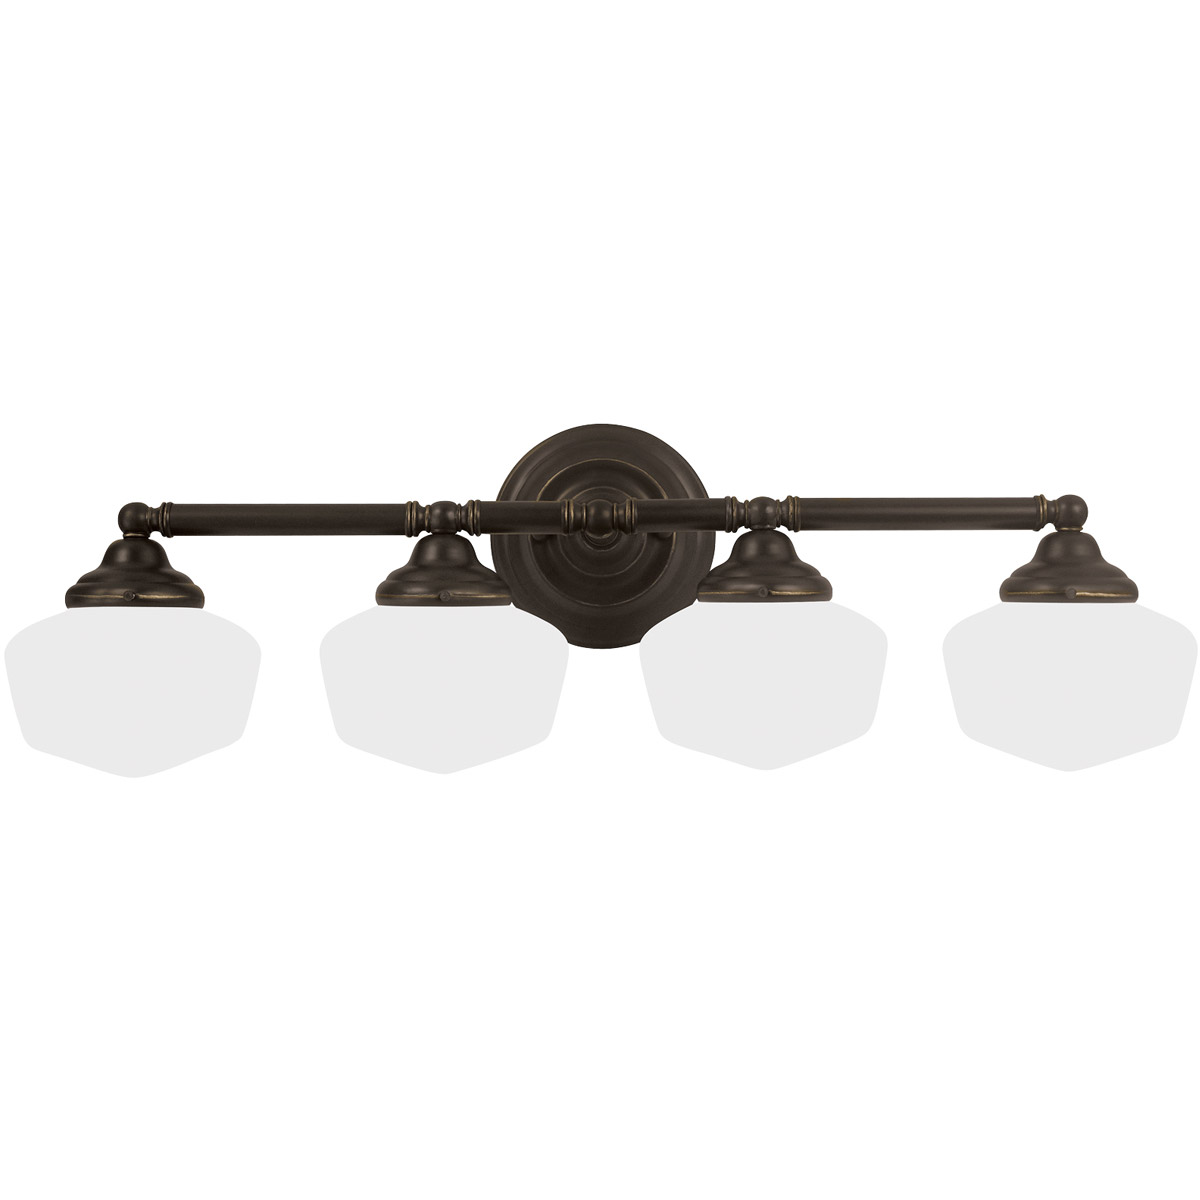 Sea Gull Academy 4 Light Bath Vanity in Heirloom Bronze 44439-782 photo